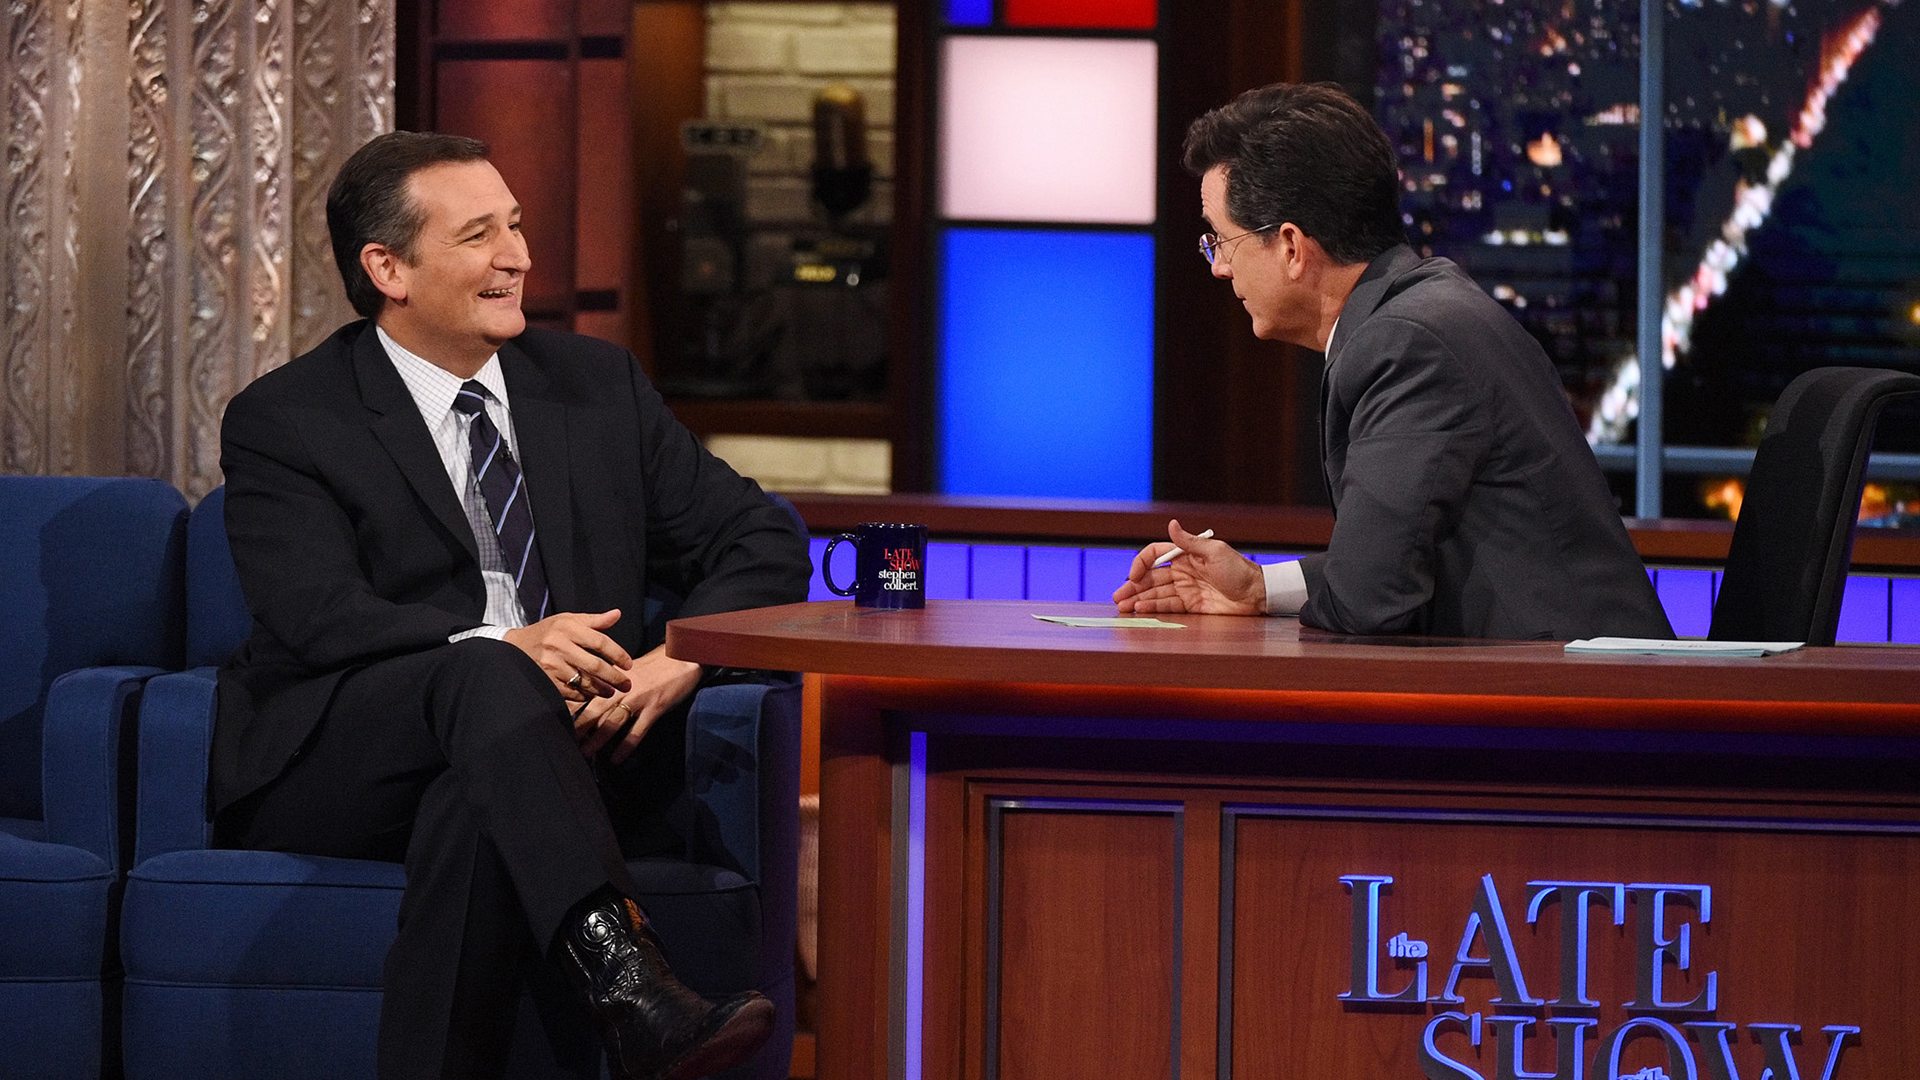 Ted Cruz and Stephen Colbert